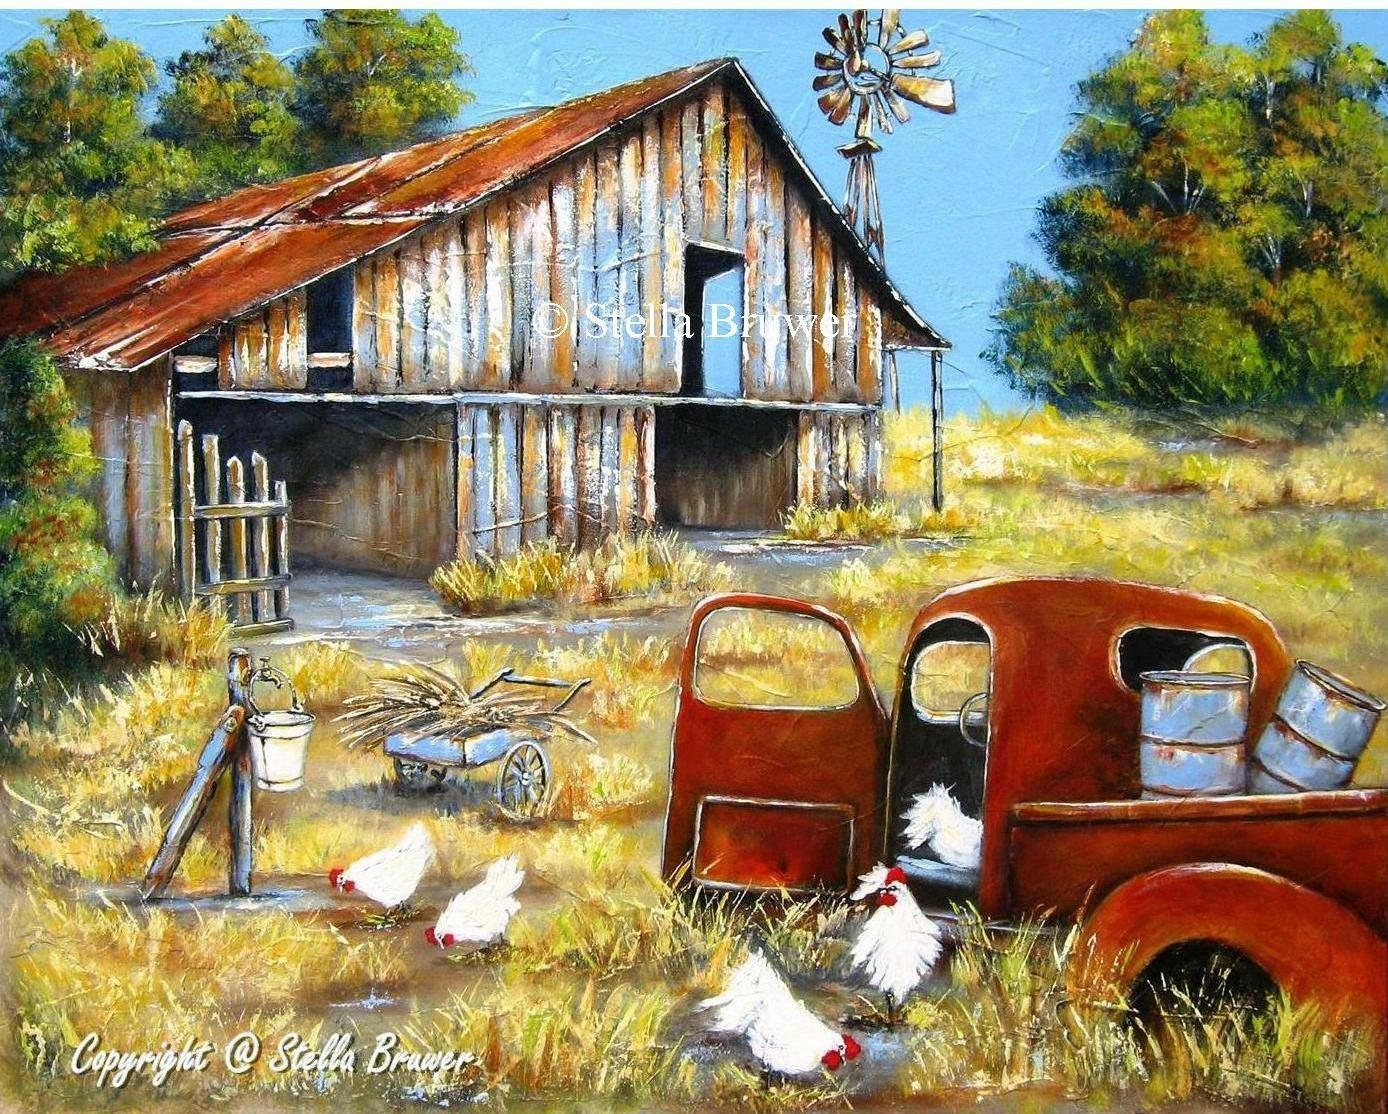 Pin By Nadine De Beer On Art Pinterest Barn Paintings